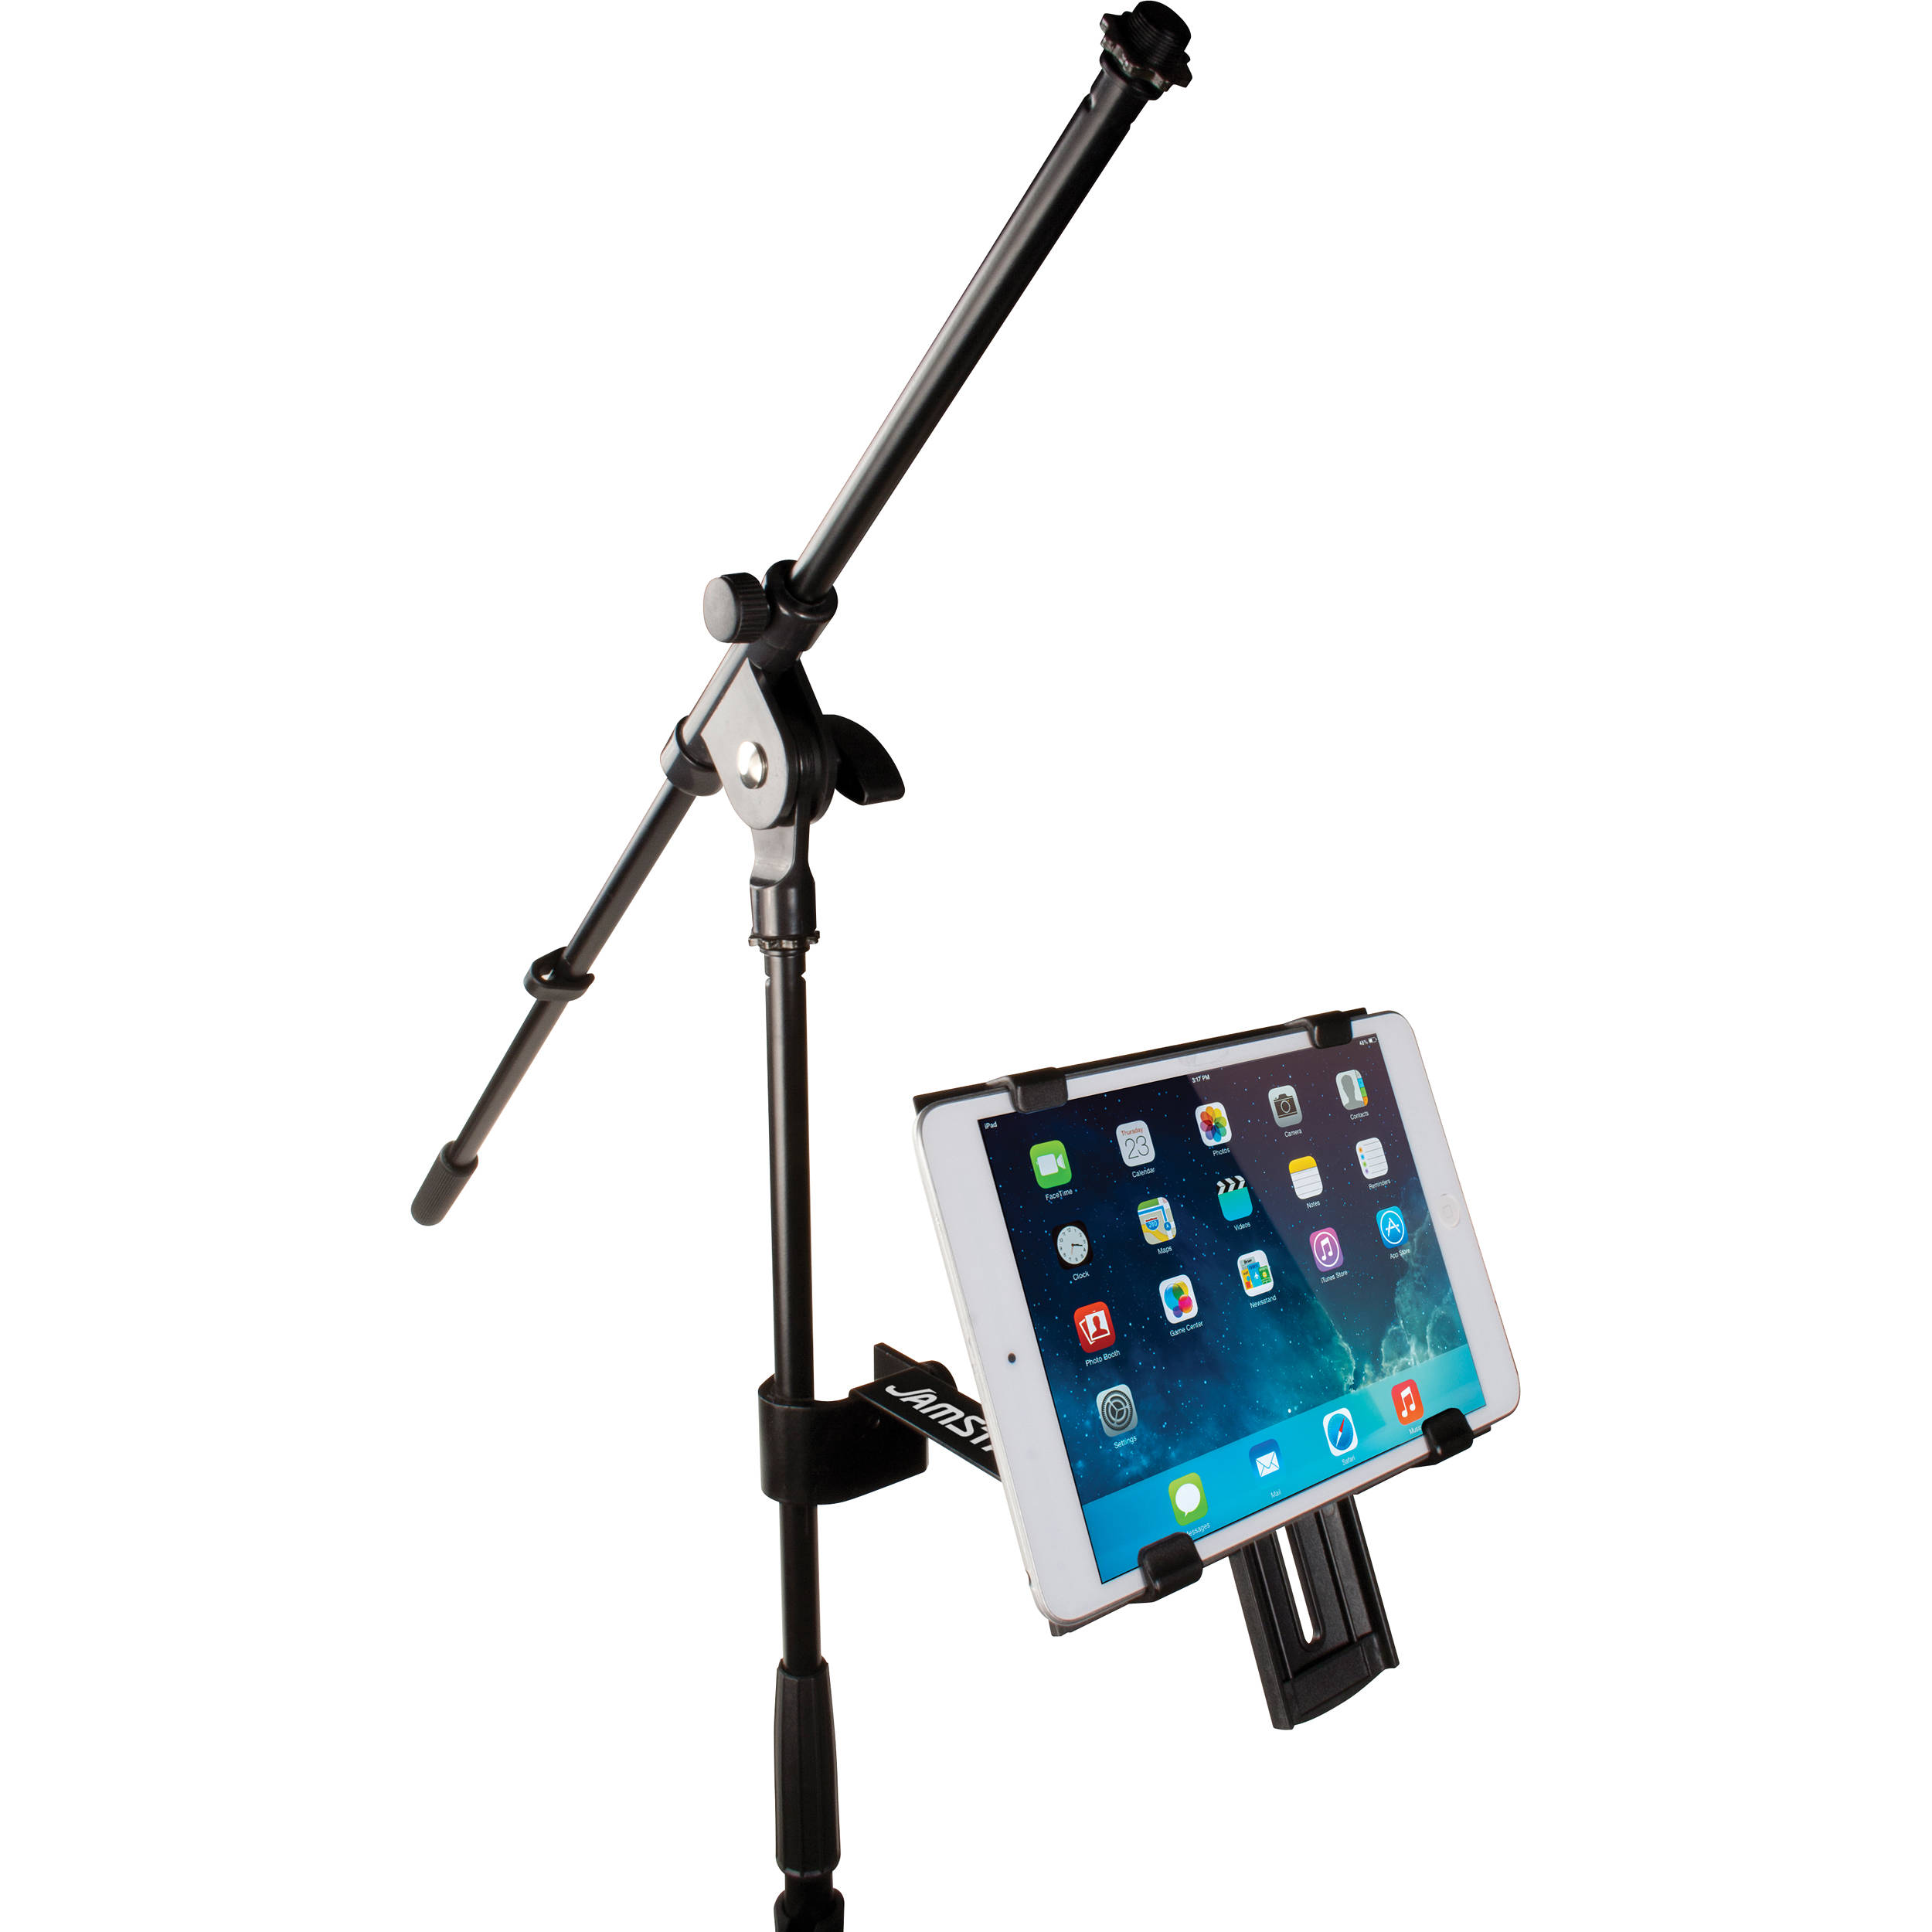 Ultimate Music Microphone Stand Tablet Holder for iPad Mini 4